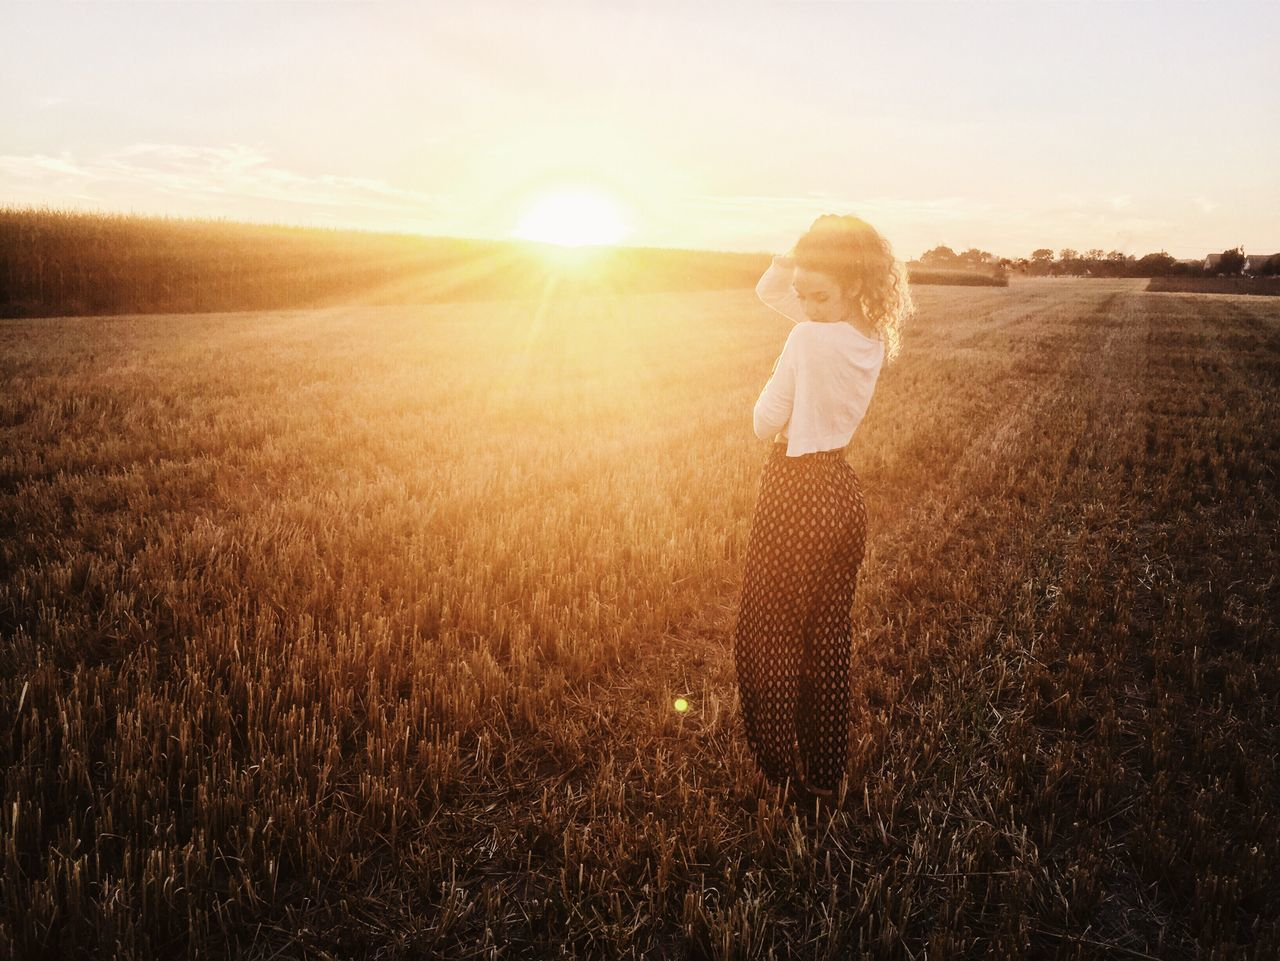 Beautiful stock photos of sunset, 20-24 Years, Agriculture, Beauty In Nature, Casual Clothing